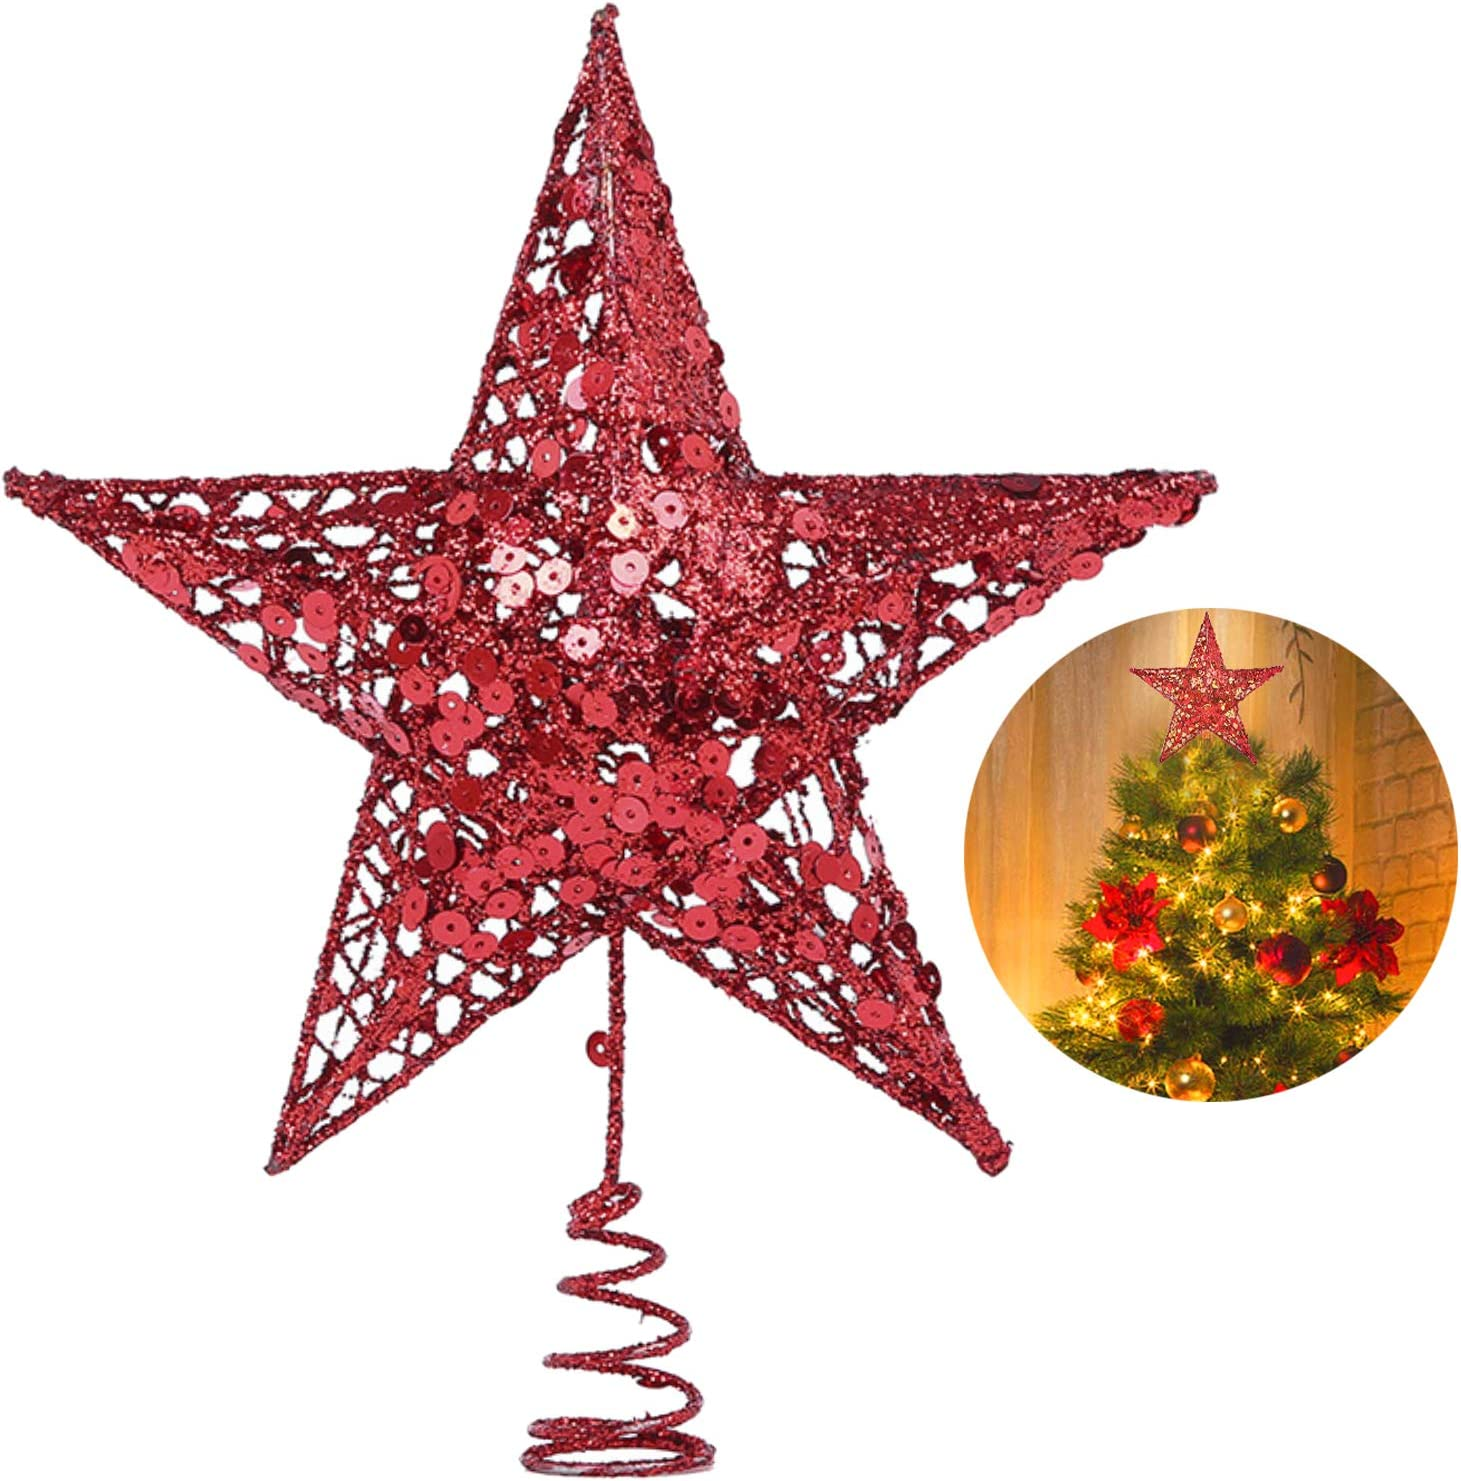 Christmas Tree Star Topper 10 Inch Xmas Tree Topper Star Christmas Decoration Glittered Tree Top Star For Christmas Tree Ornament Indoor Party Home Decoration Home Kitchen